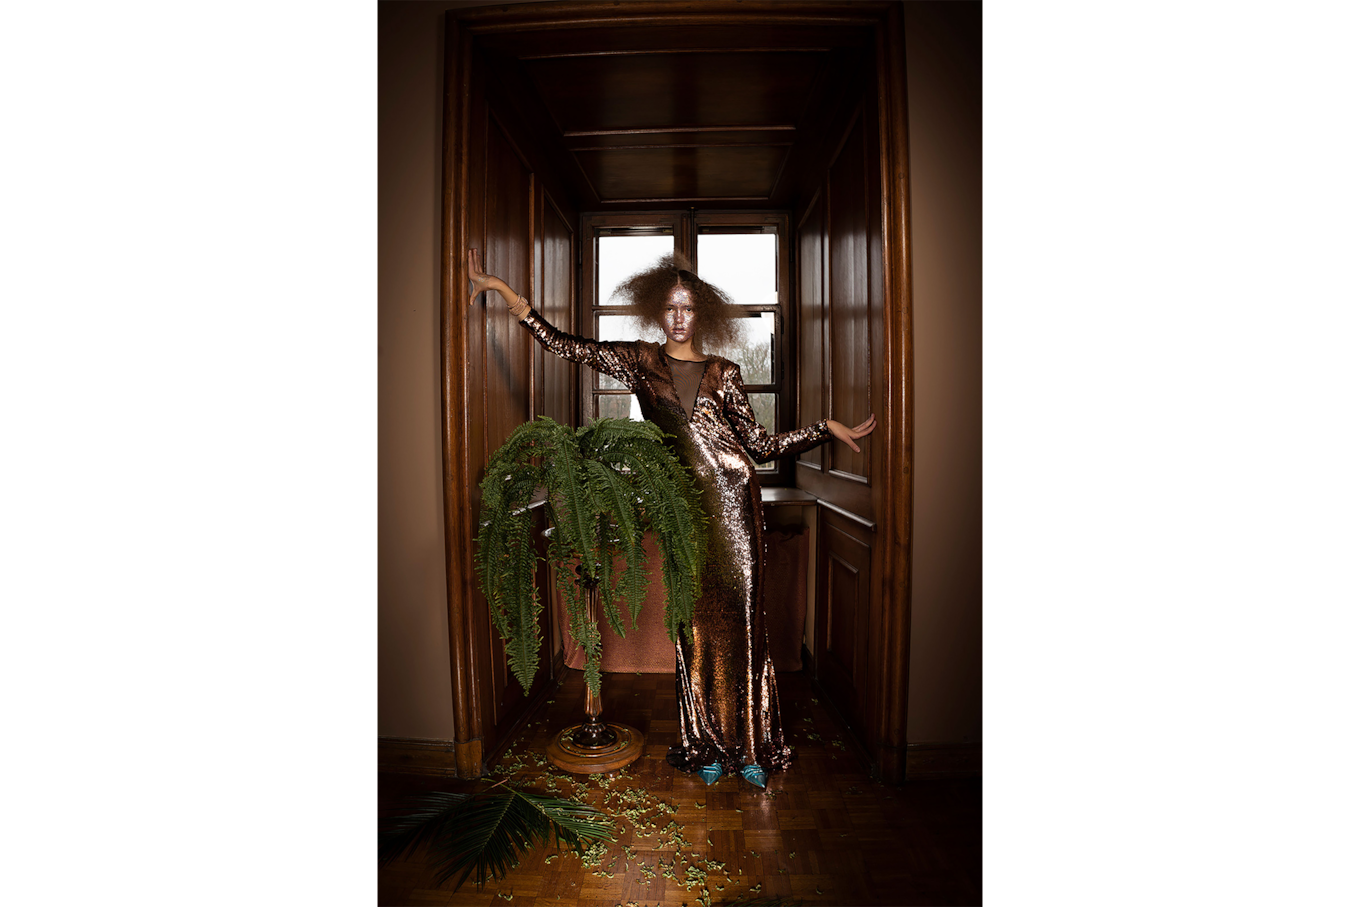 lidia popiel sony alpha 7r3 a woman is wearing a glitter dress and a glitter make up and stands next to a plant loosing fir needles